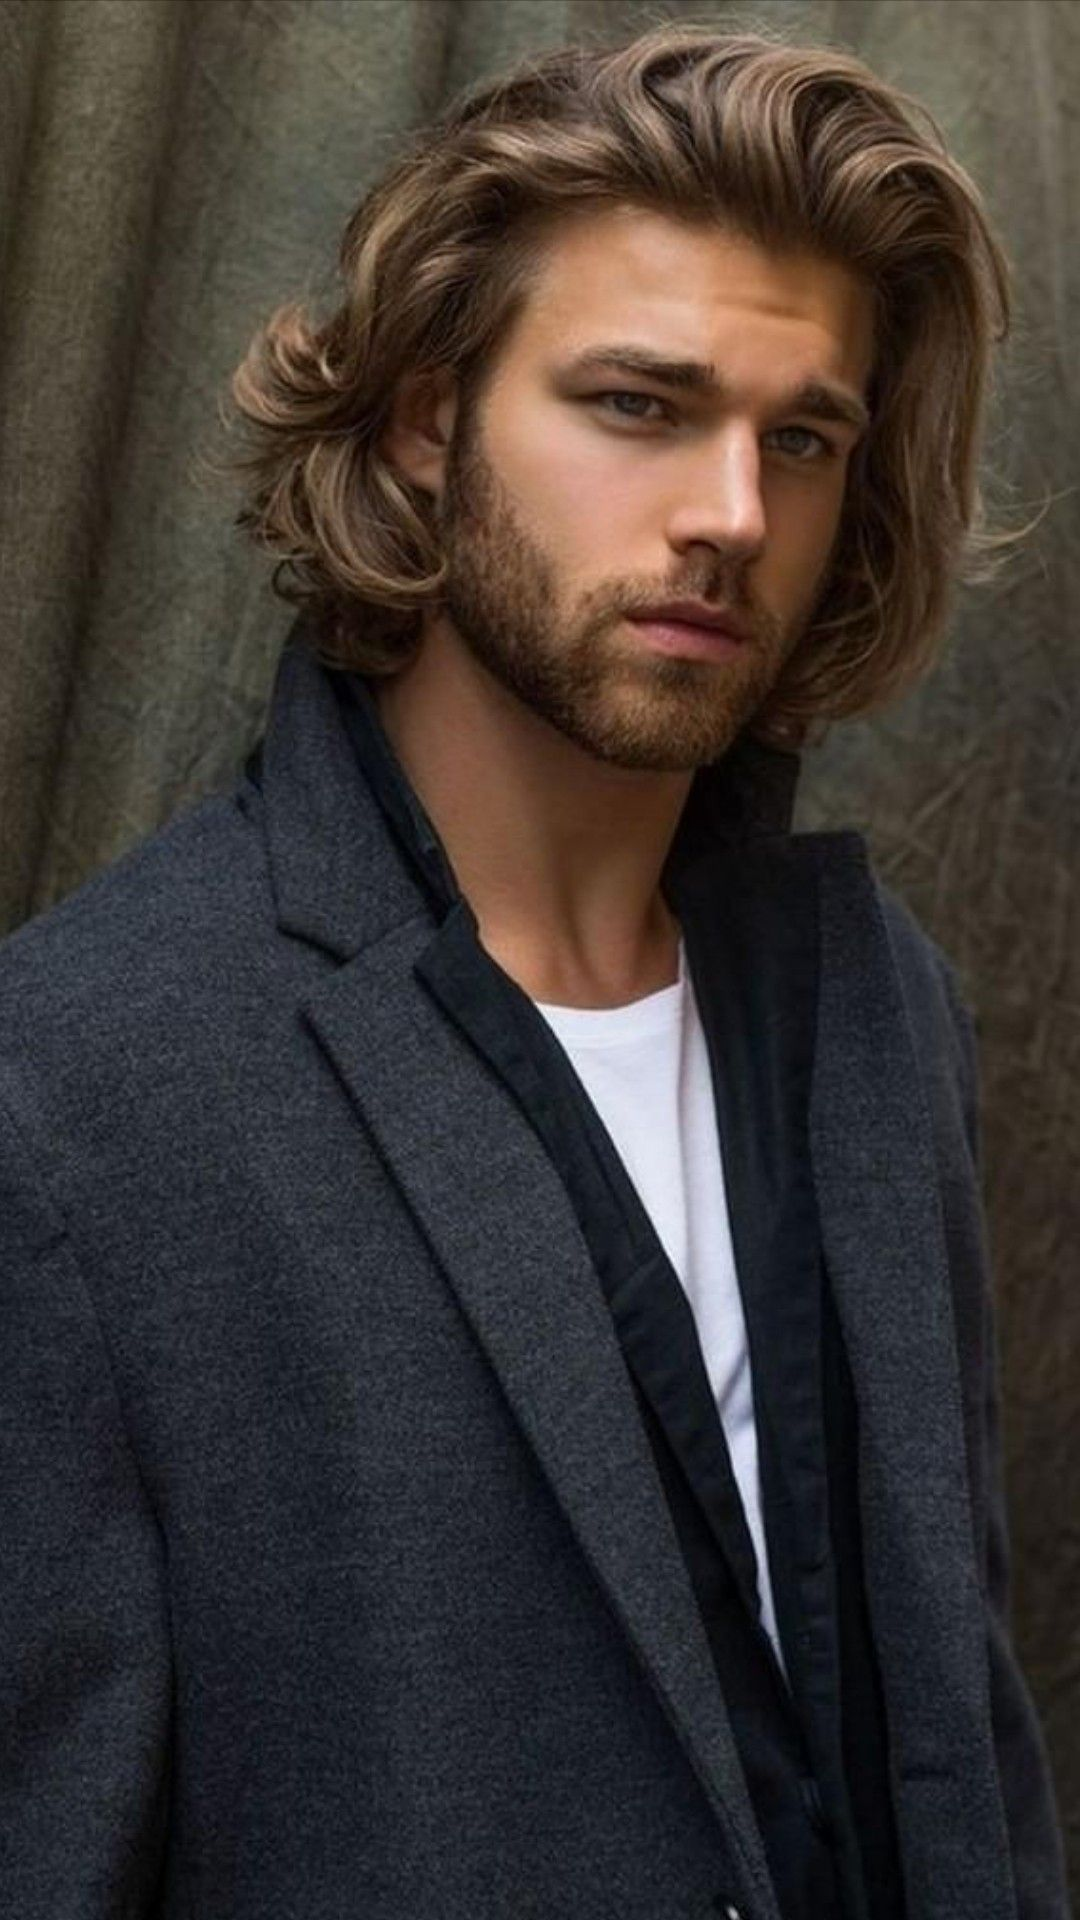 Pin By Ameartbuenosaires On Men S Style Long Hair Styles Men Mens Hairstyles Long Hair Styles